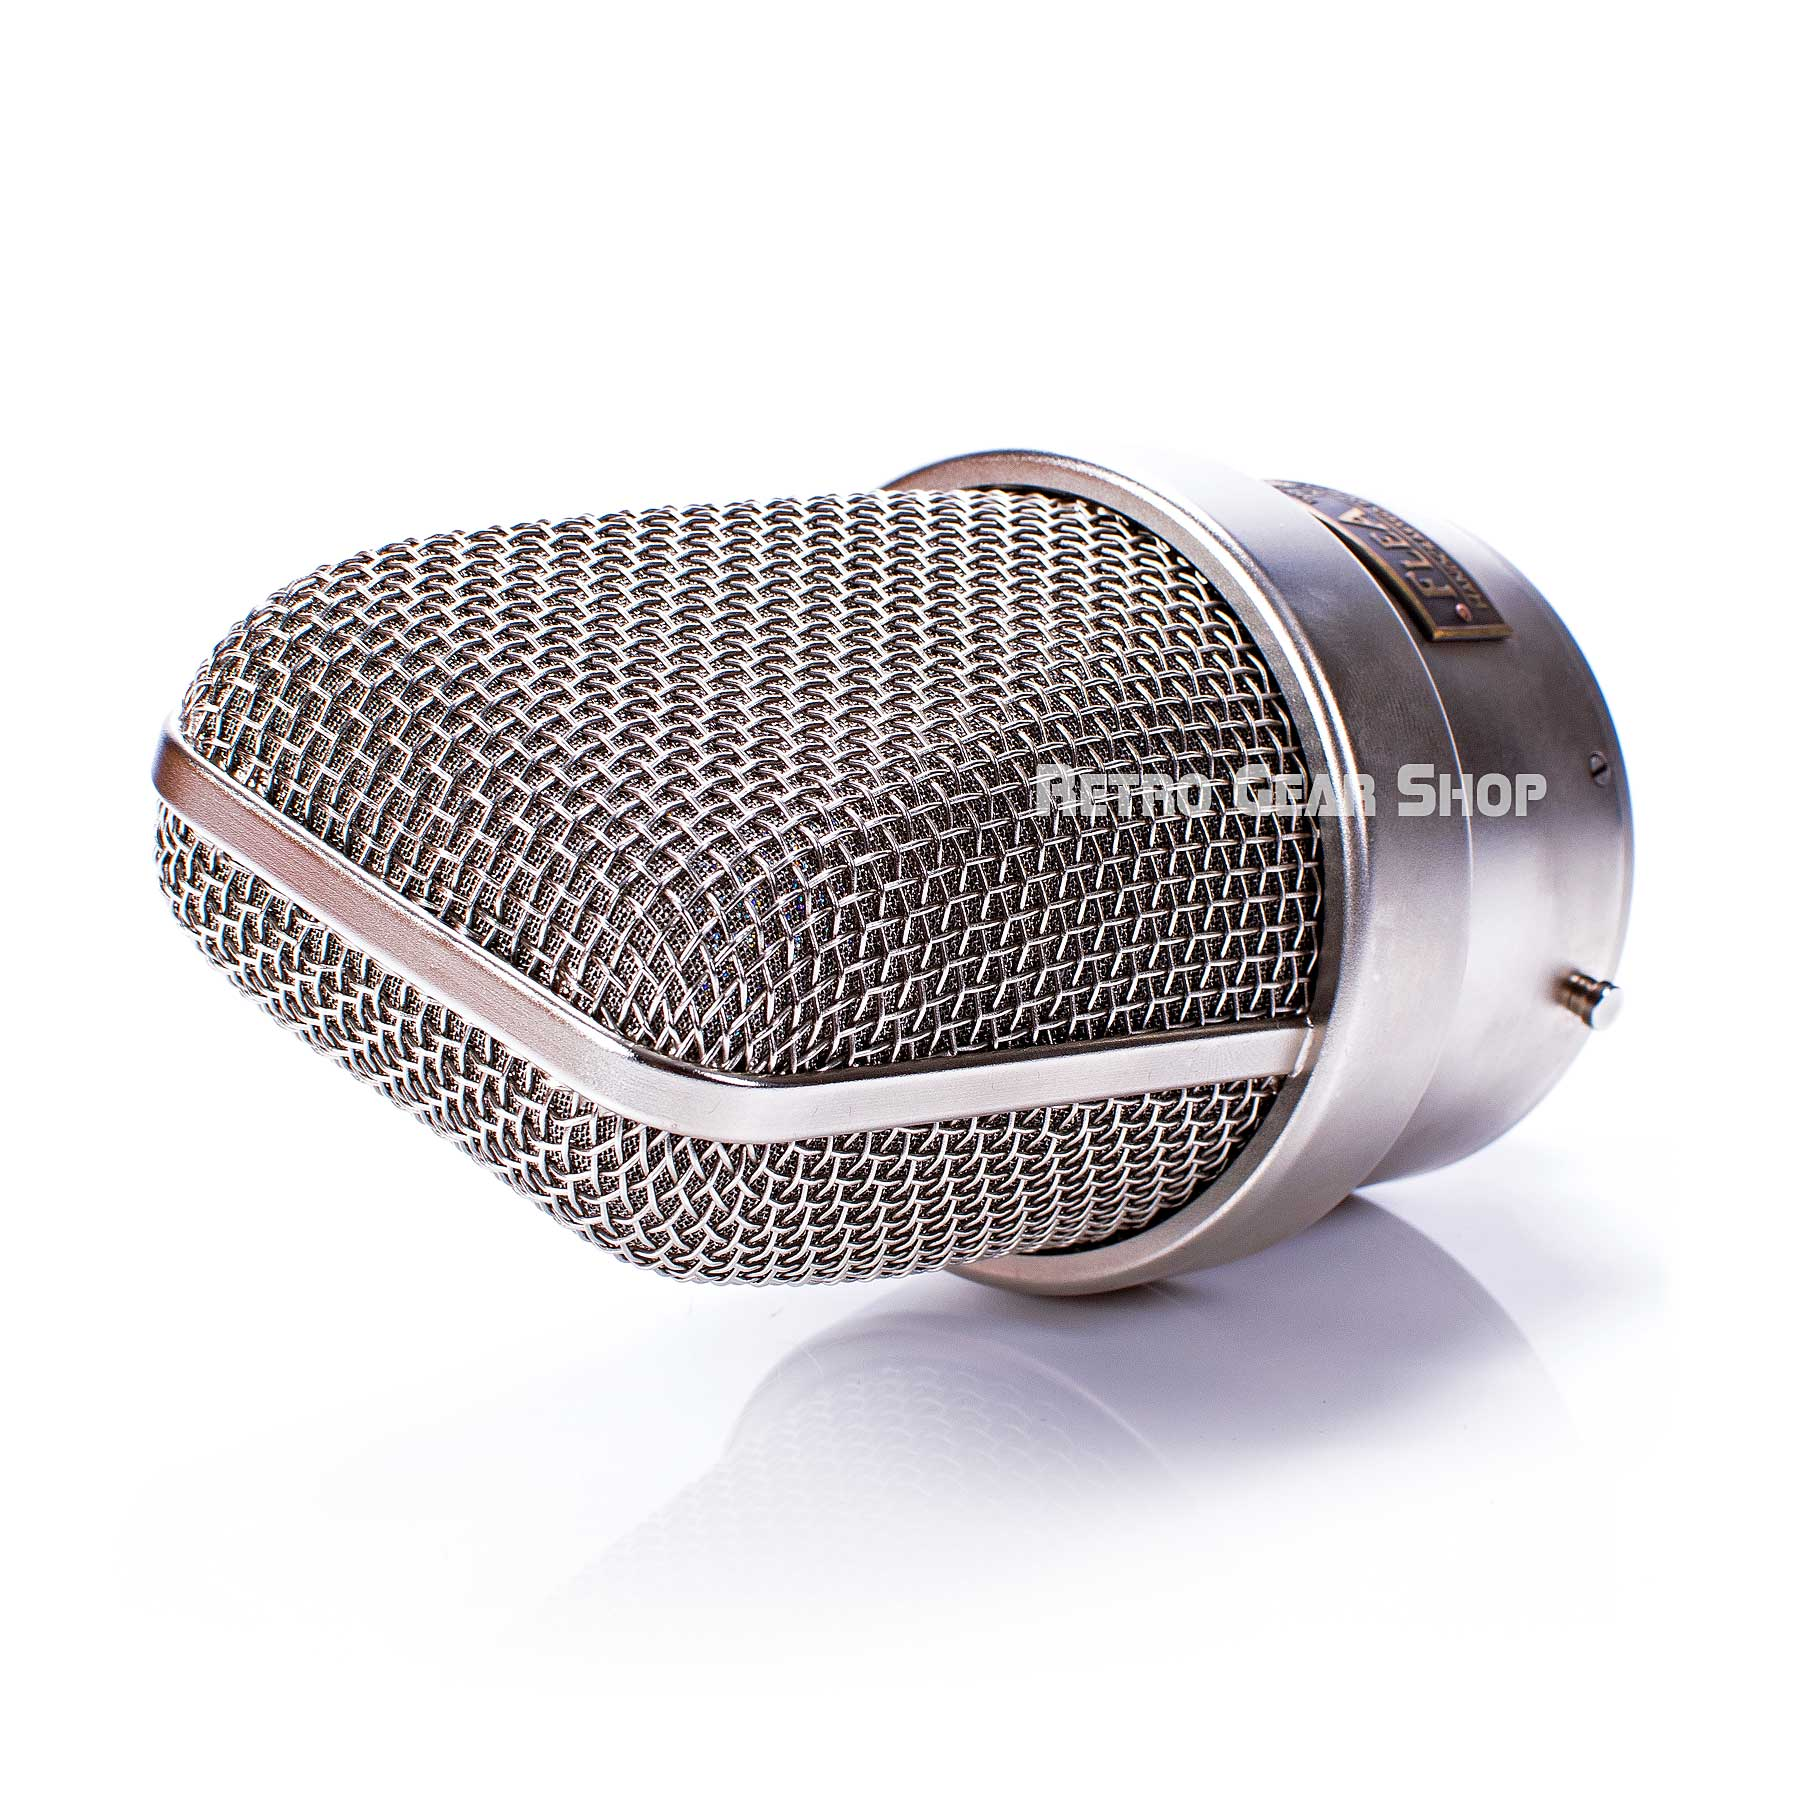 FLEA Microphones 250 Top Grille